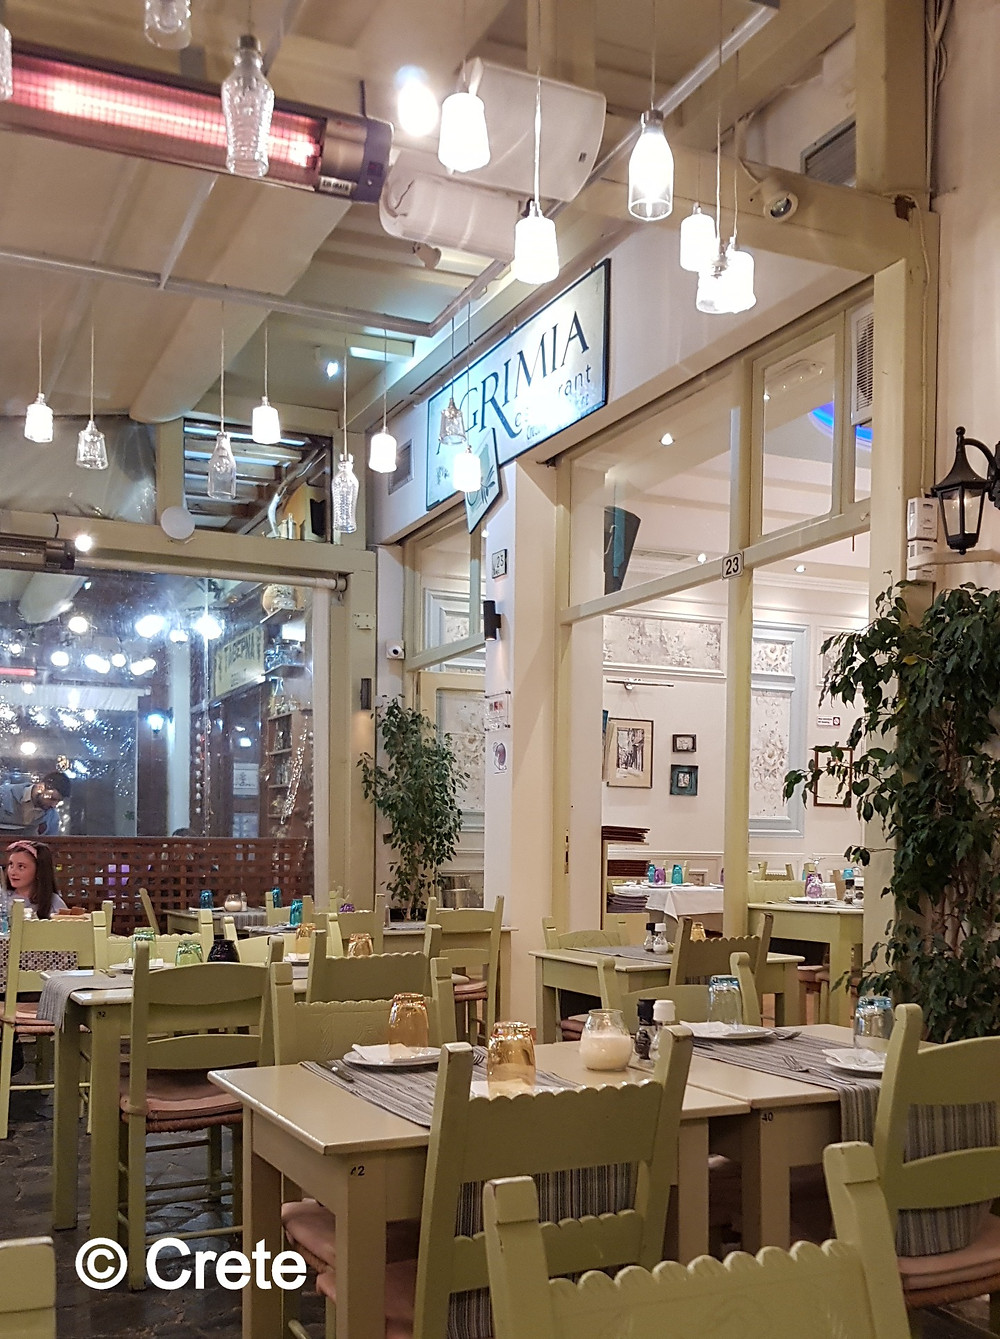 Agrimia is a Taverna right in the centre of Rethymno, Crete, Greece. It offer tasty local and Greek cuisine in a family atmosphere.